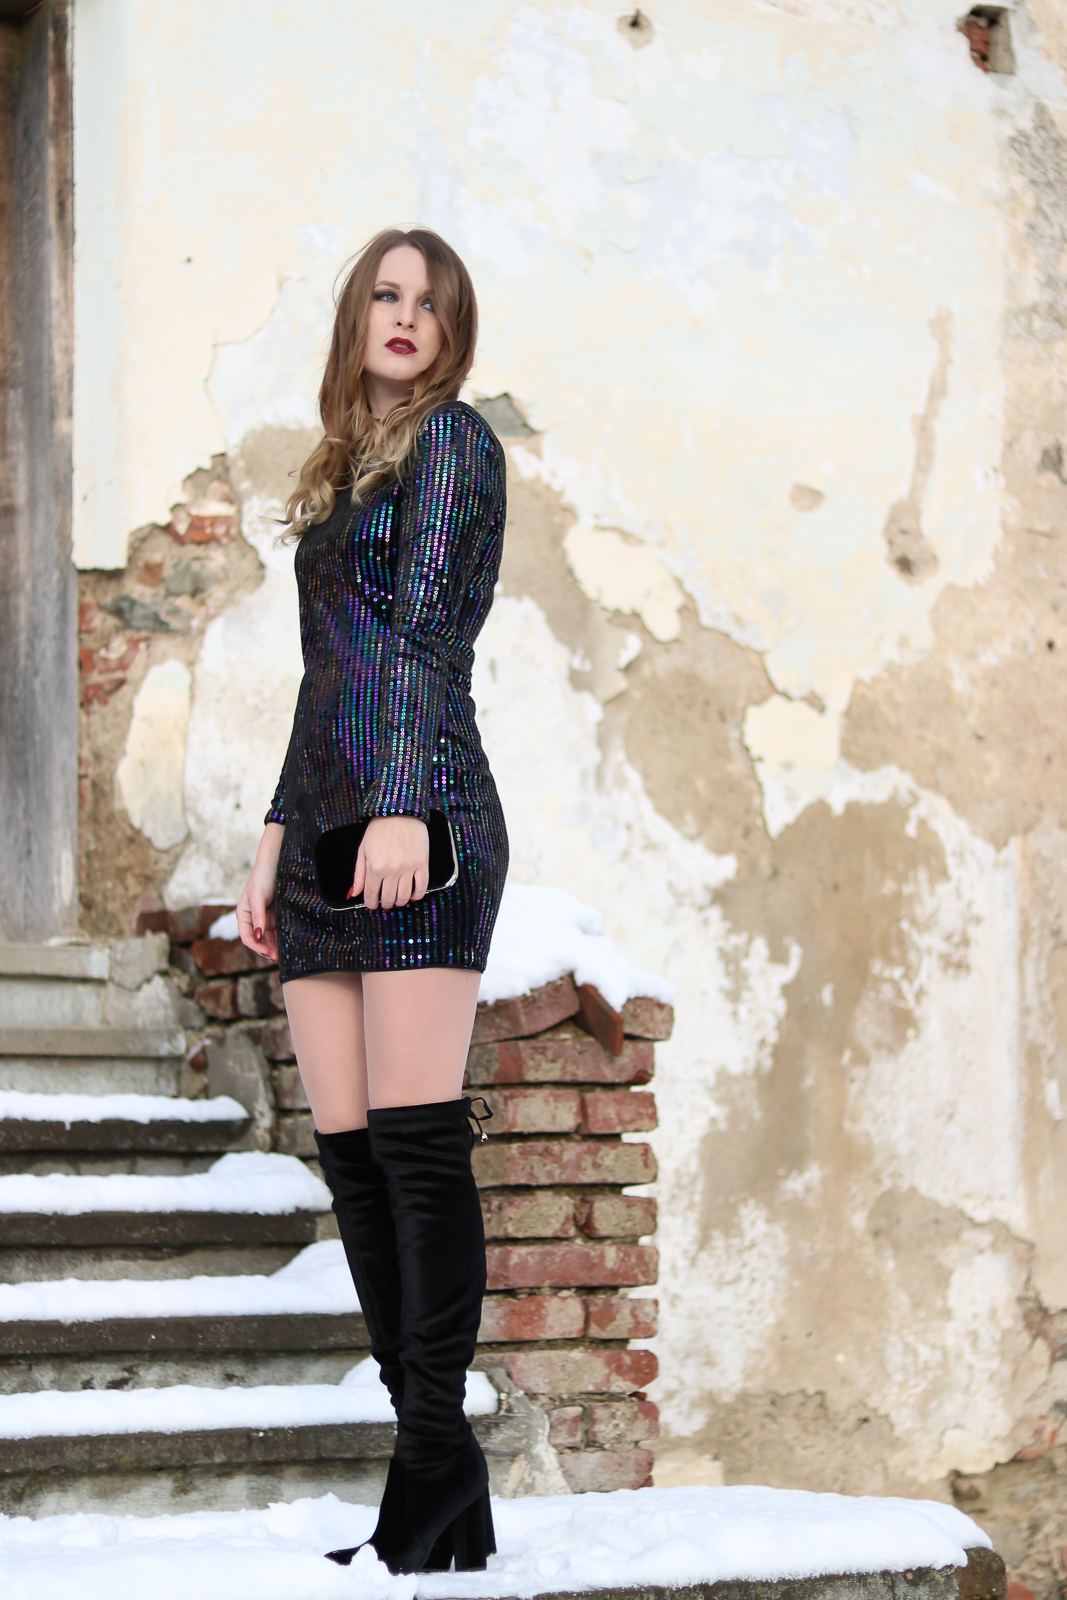 4 Styles 4u Silvester Outfit  Paillettenkleid und Overknees  Fashionladyloves